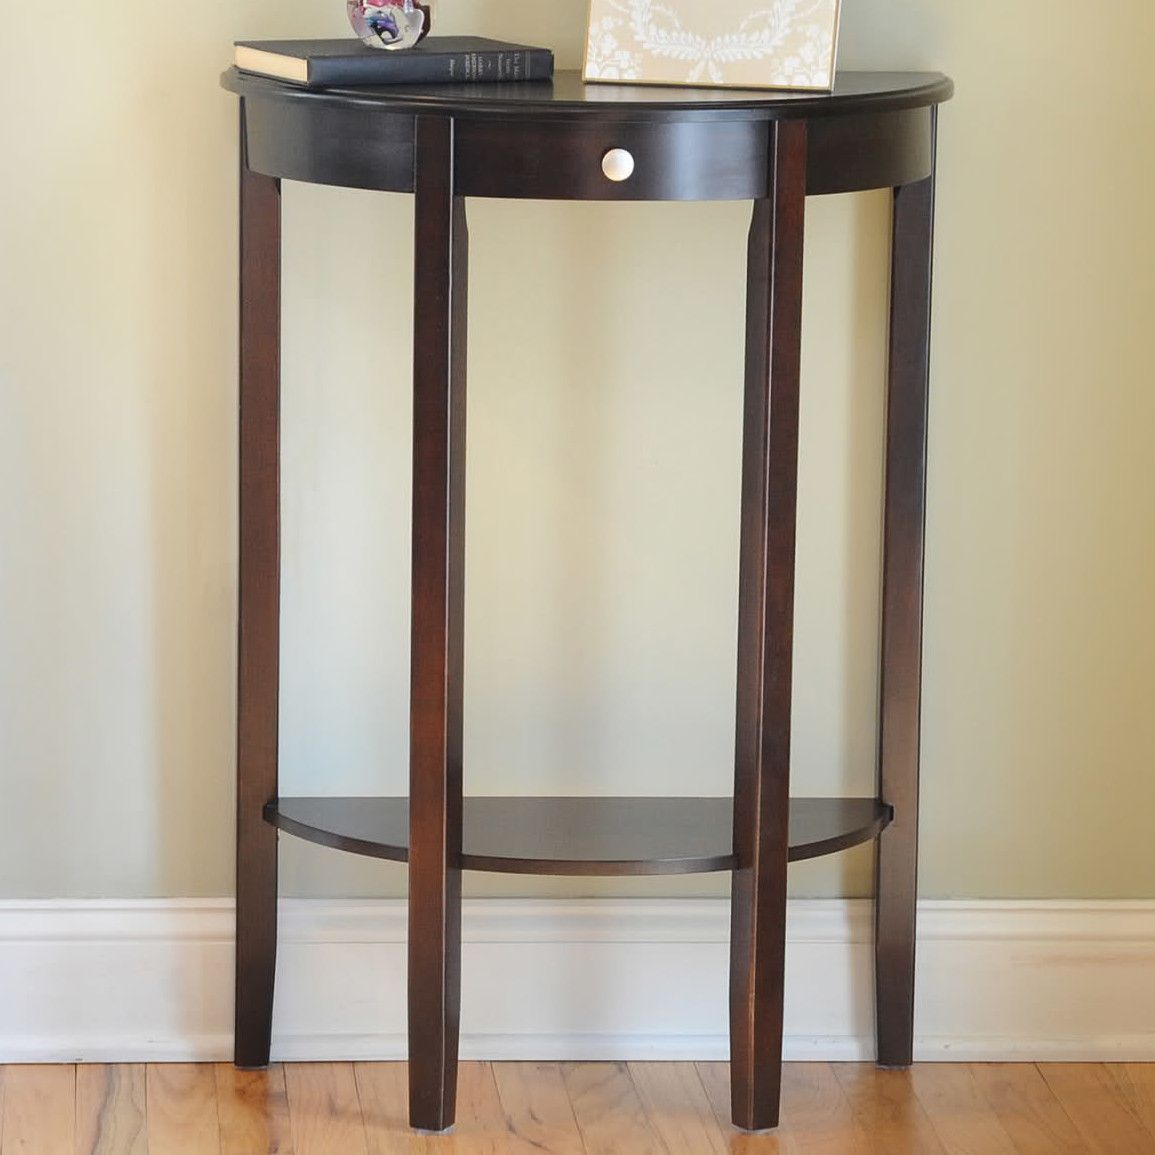 Melville Half Moon Console Table